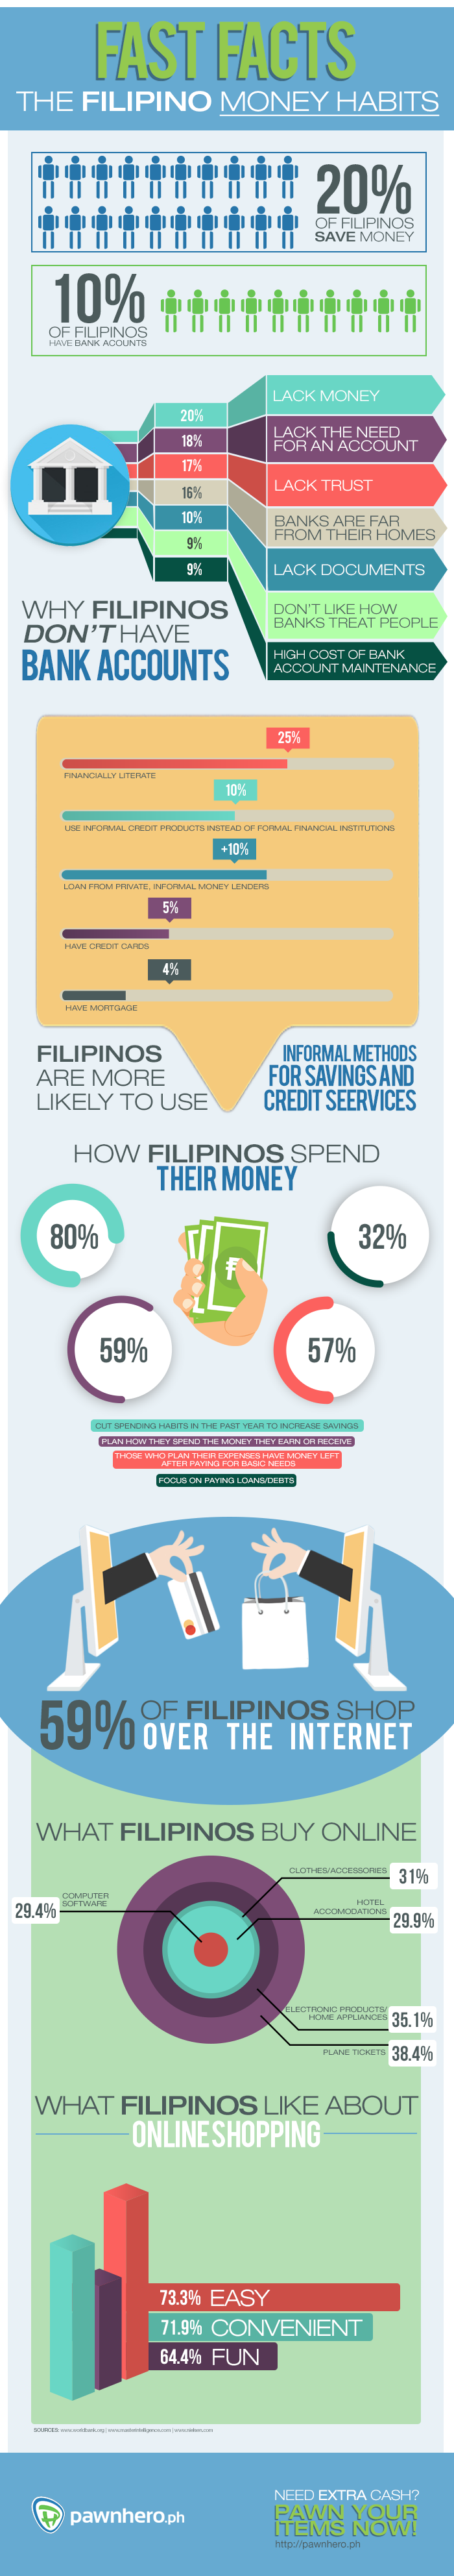 Fast Facts: The Filipino Money Habits